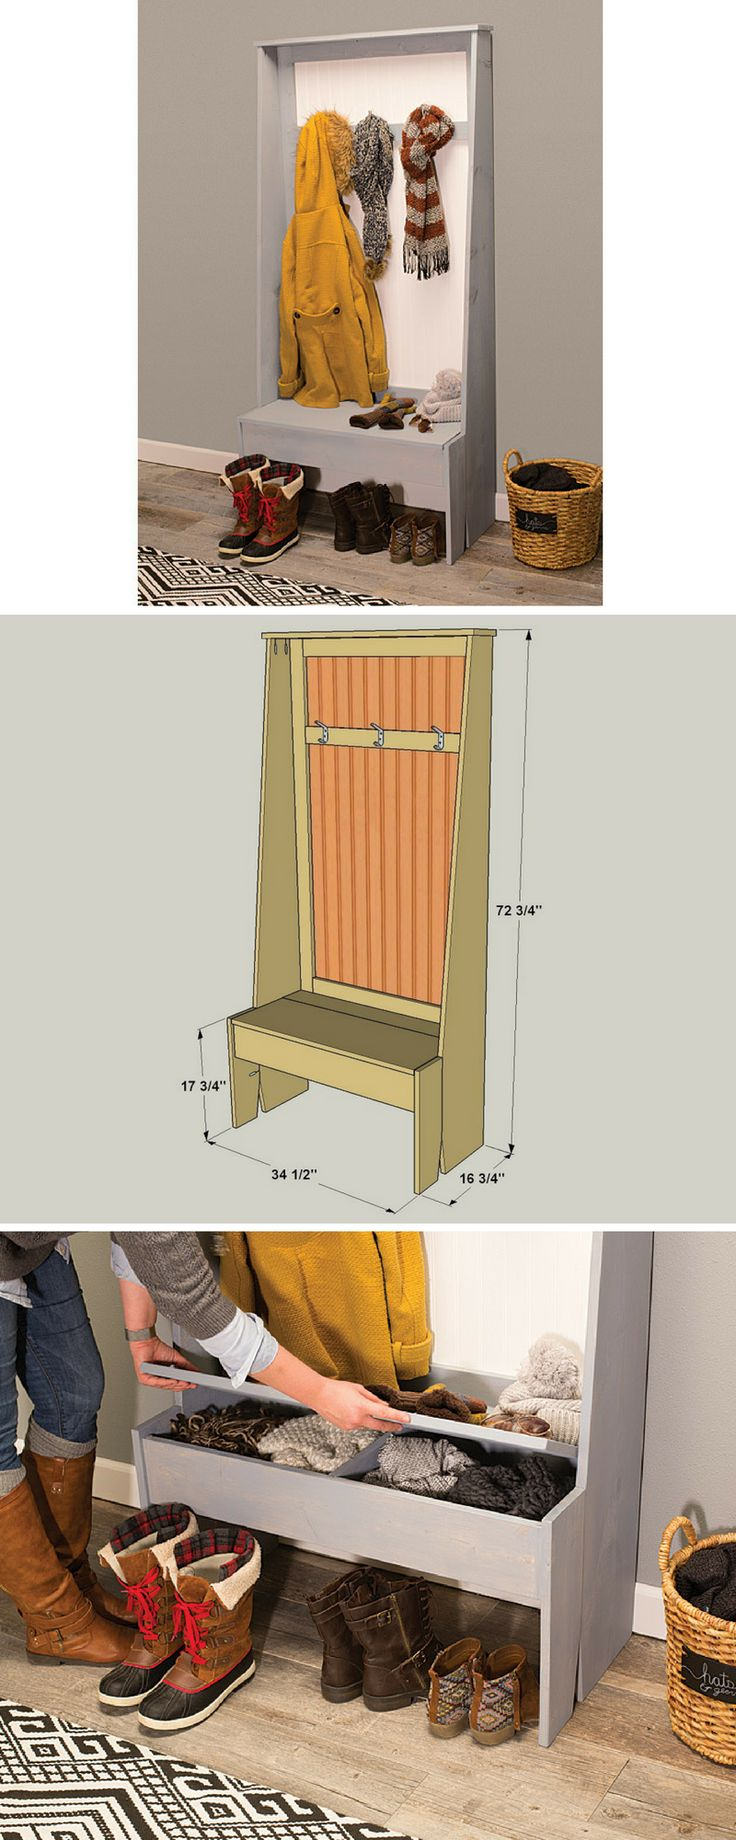 Add some rustic style to any entryway with this easy-to-build organizer. It offers hooks, a seat, and a shallow storage compartment. All you have to do is make some cuts in off-the-shelf pine boards and a sheet of beadboard paneling. Even the subtle tapered cuts are easy using a jigsaw.